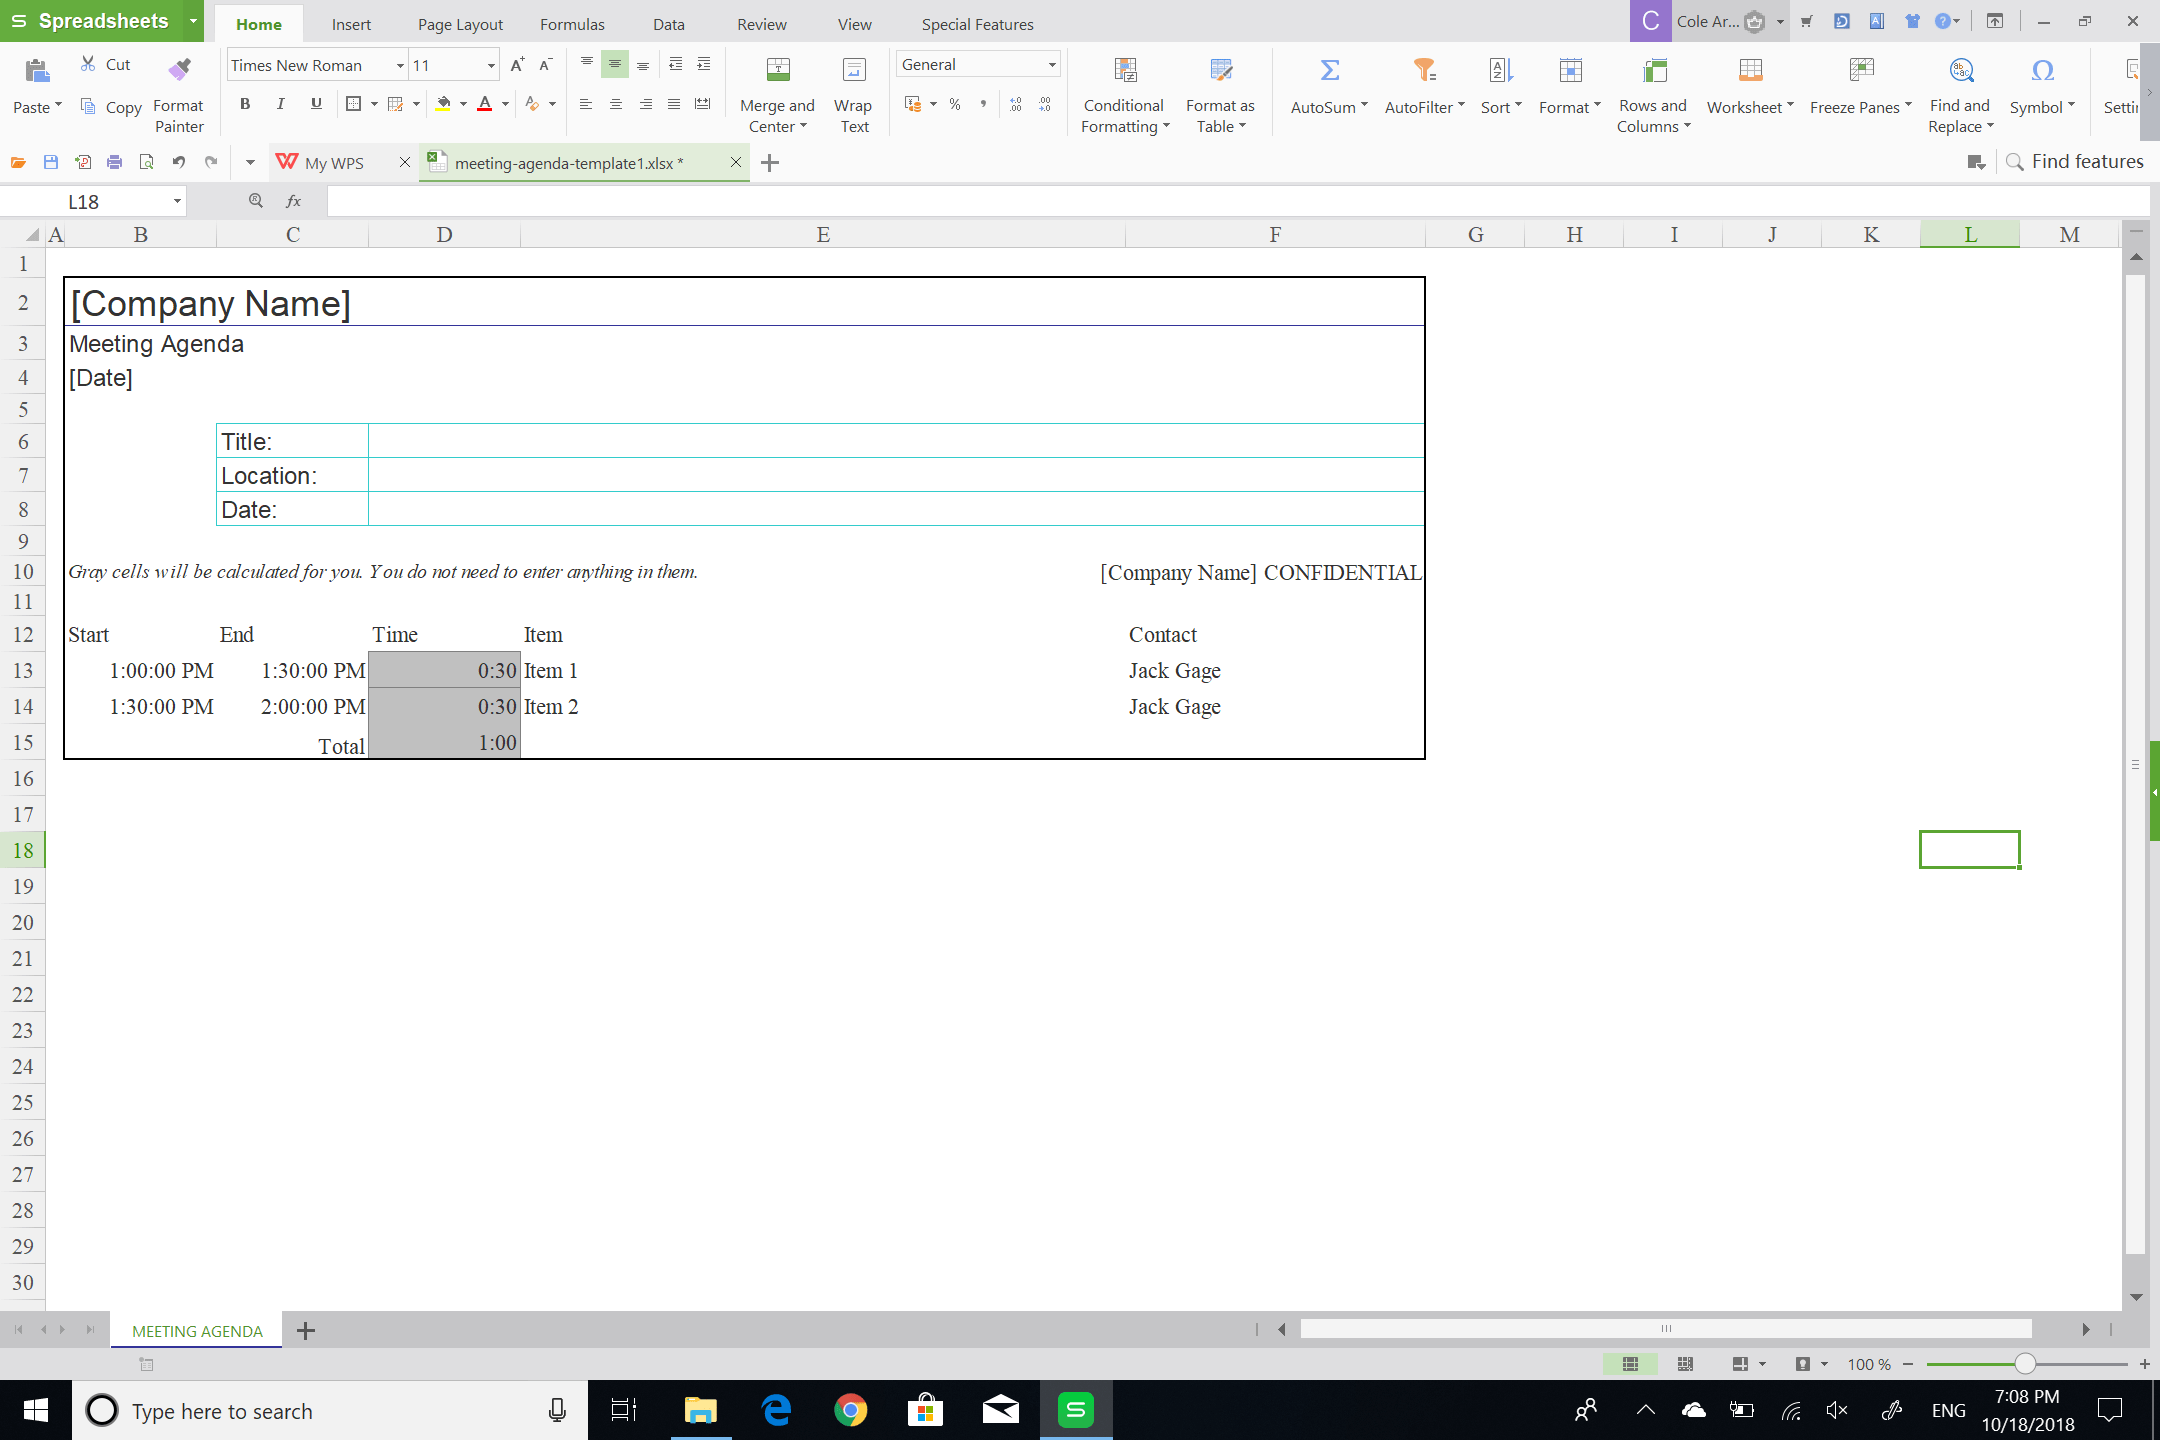 How To Show Or Hide Gridlines On Spreadsheet